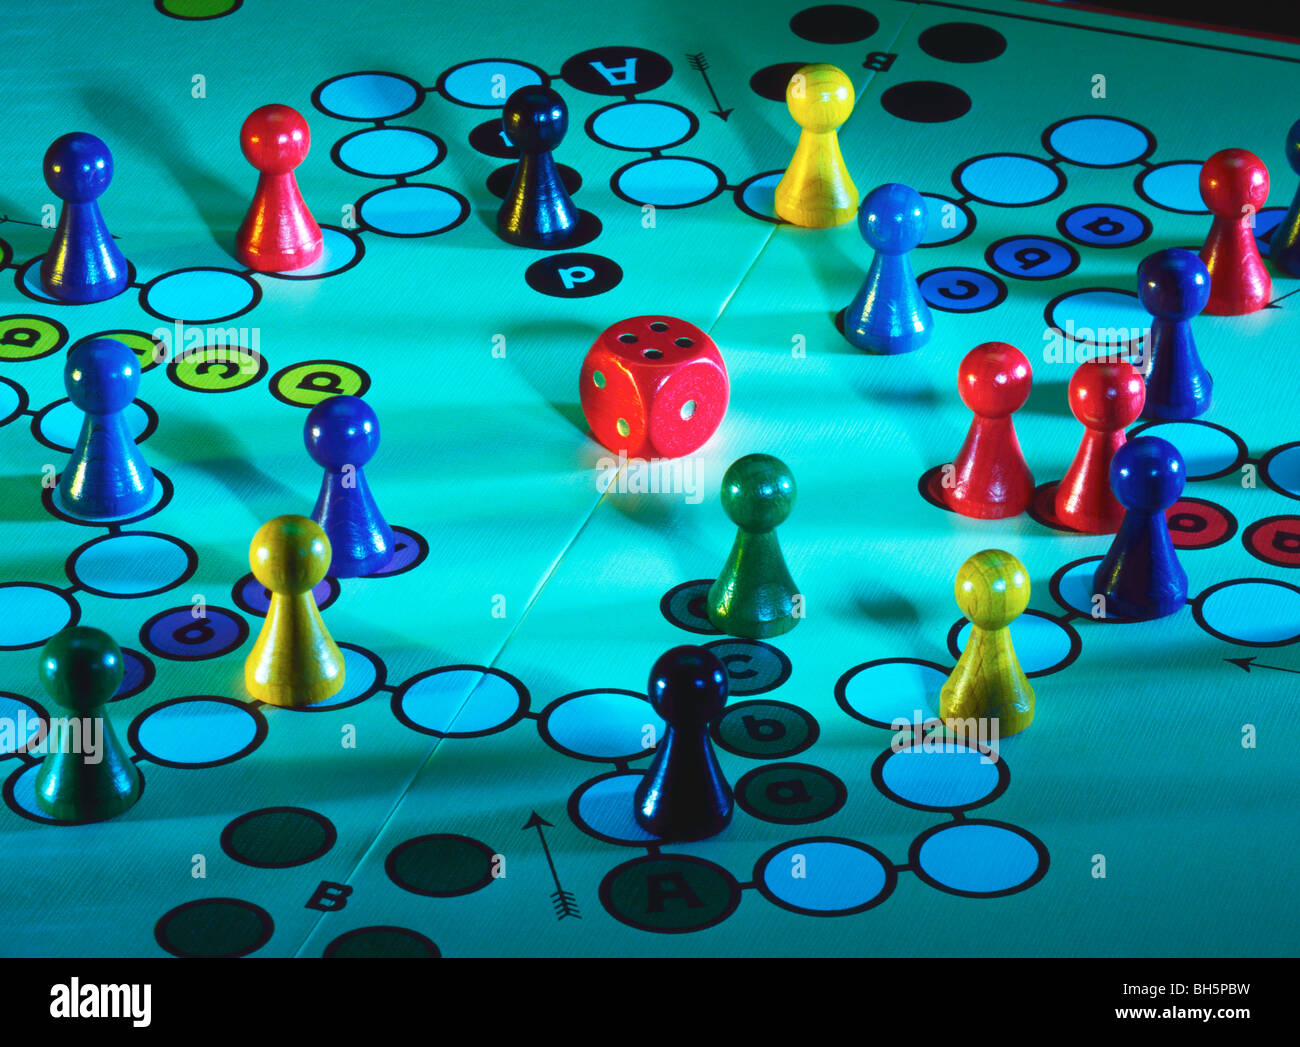 Mensch aergere dich nicht. The game Frustration. The name in French is T'en fais pas - Stock Image